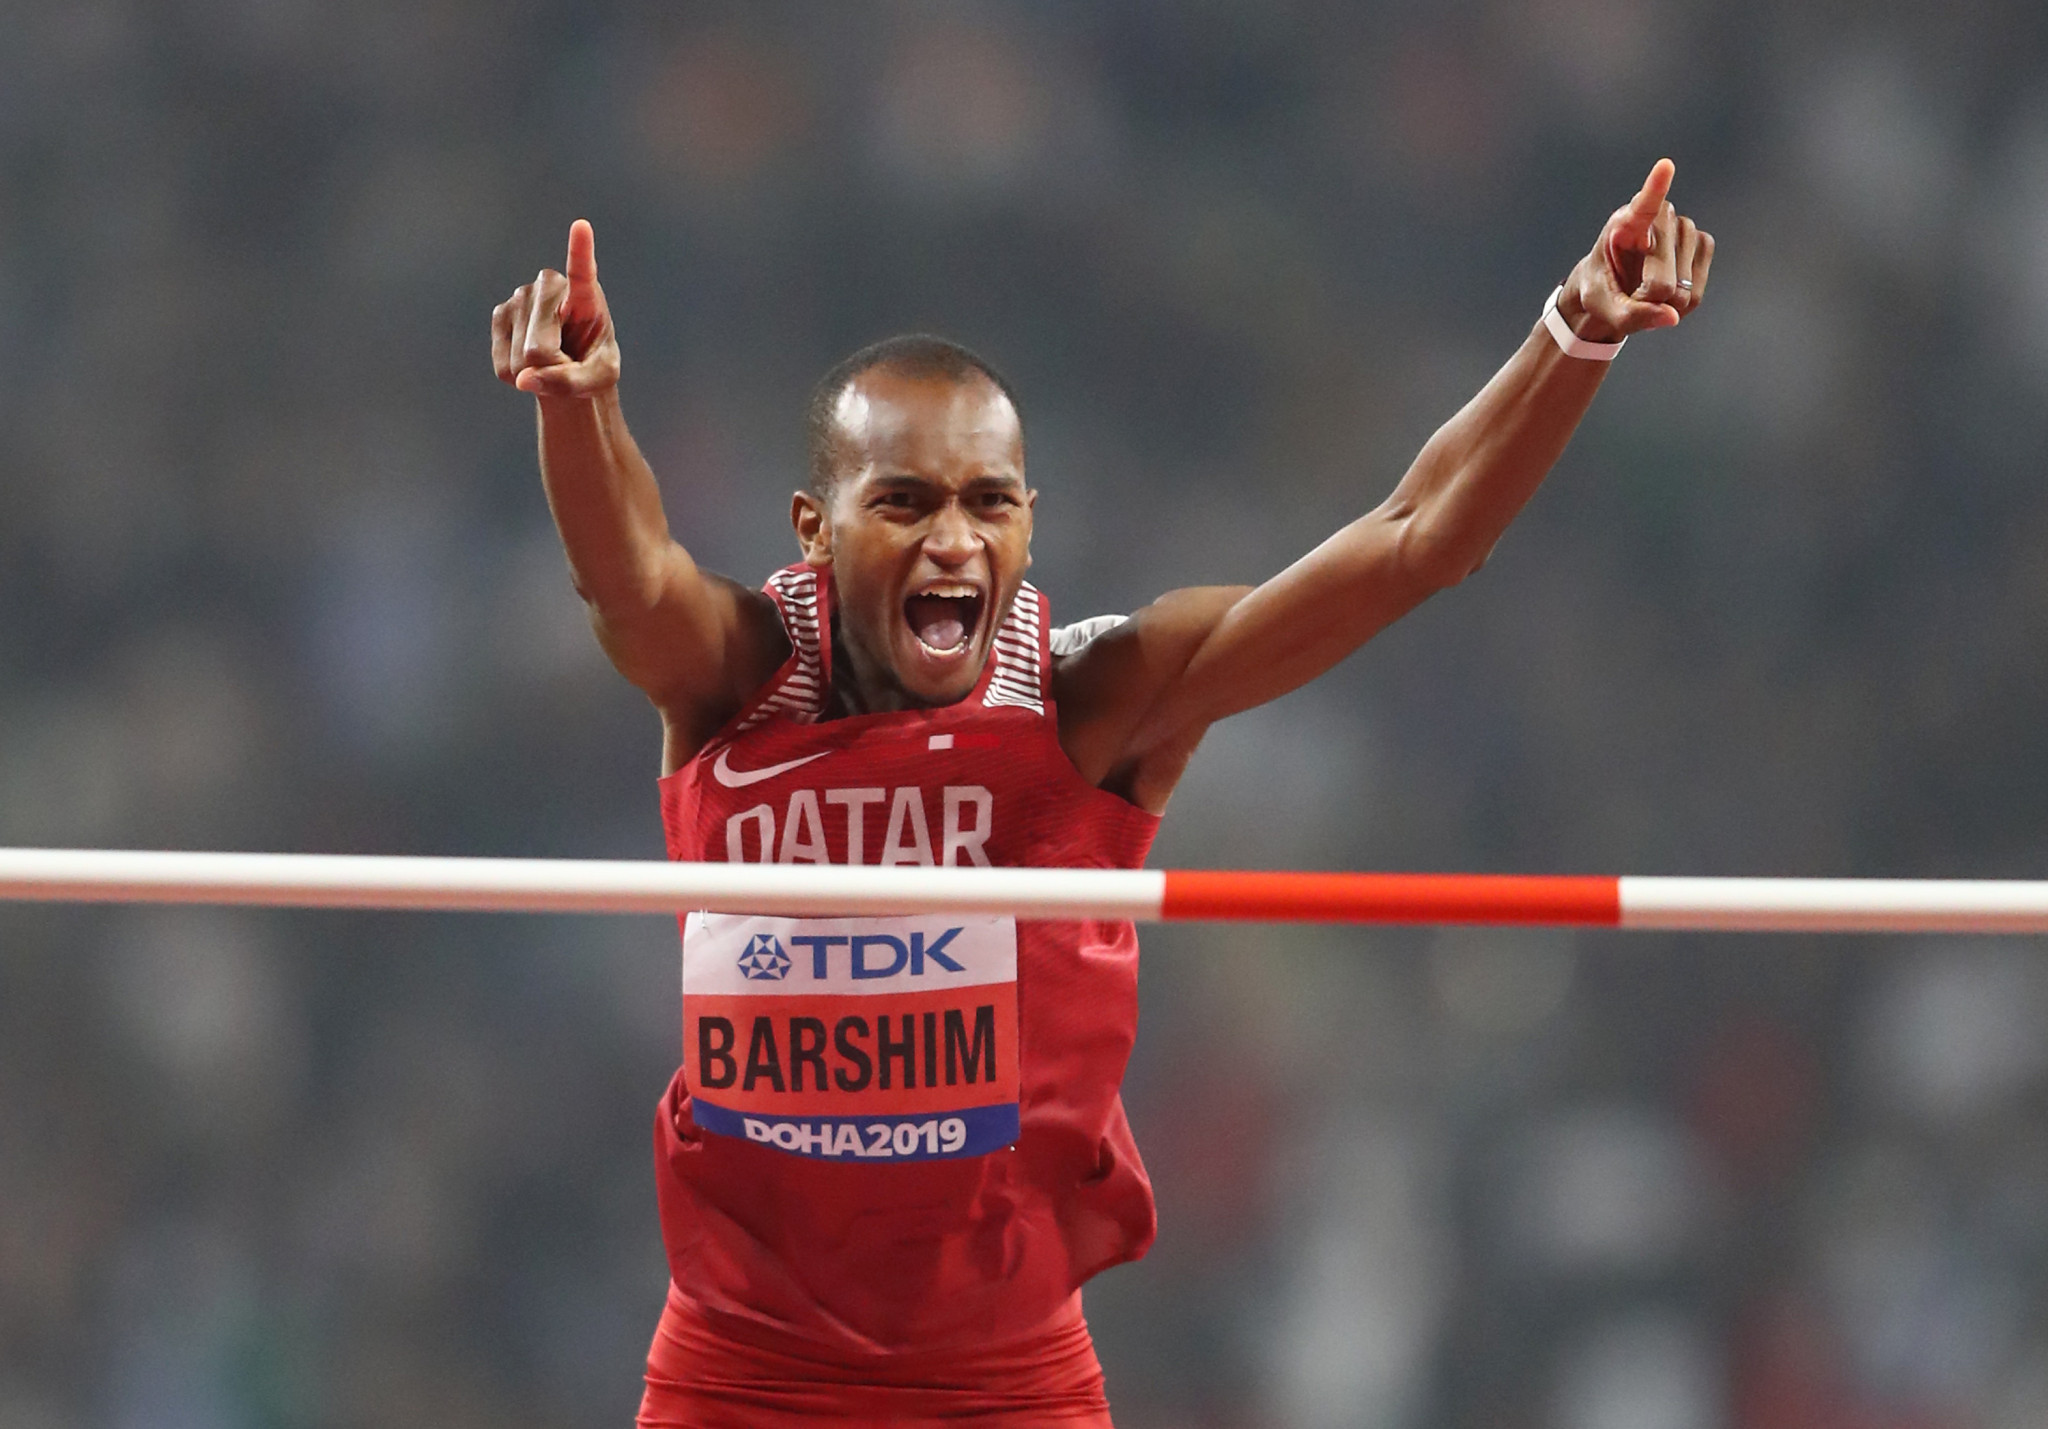 Barshim's emotions came pouring after his winning jump ©Getty Images